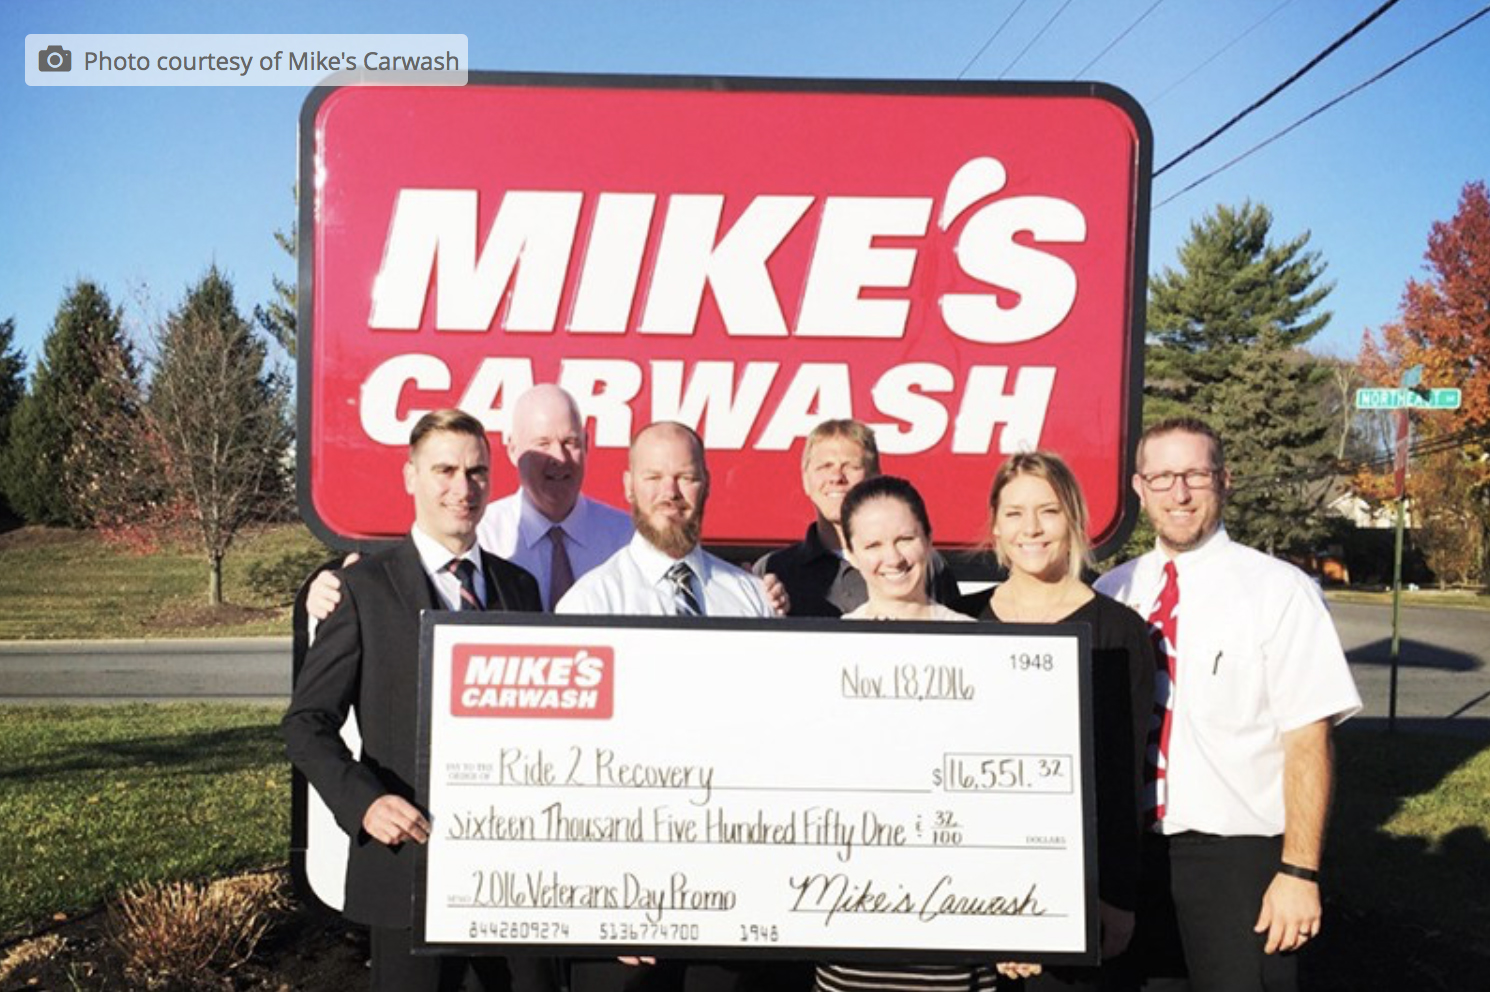 Mike's Carwash raises 16.5K for Ride 2 Recovery